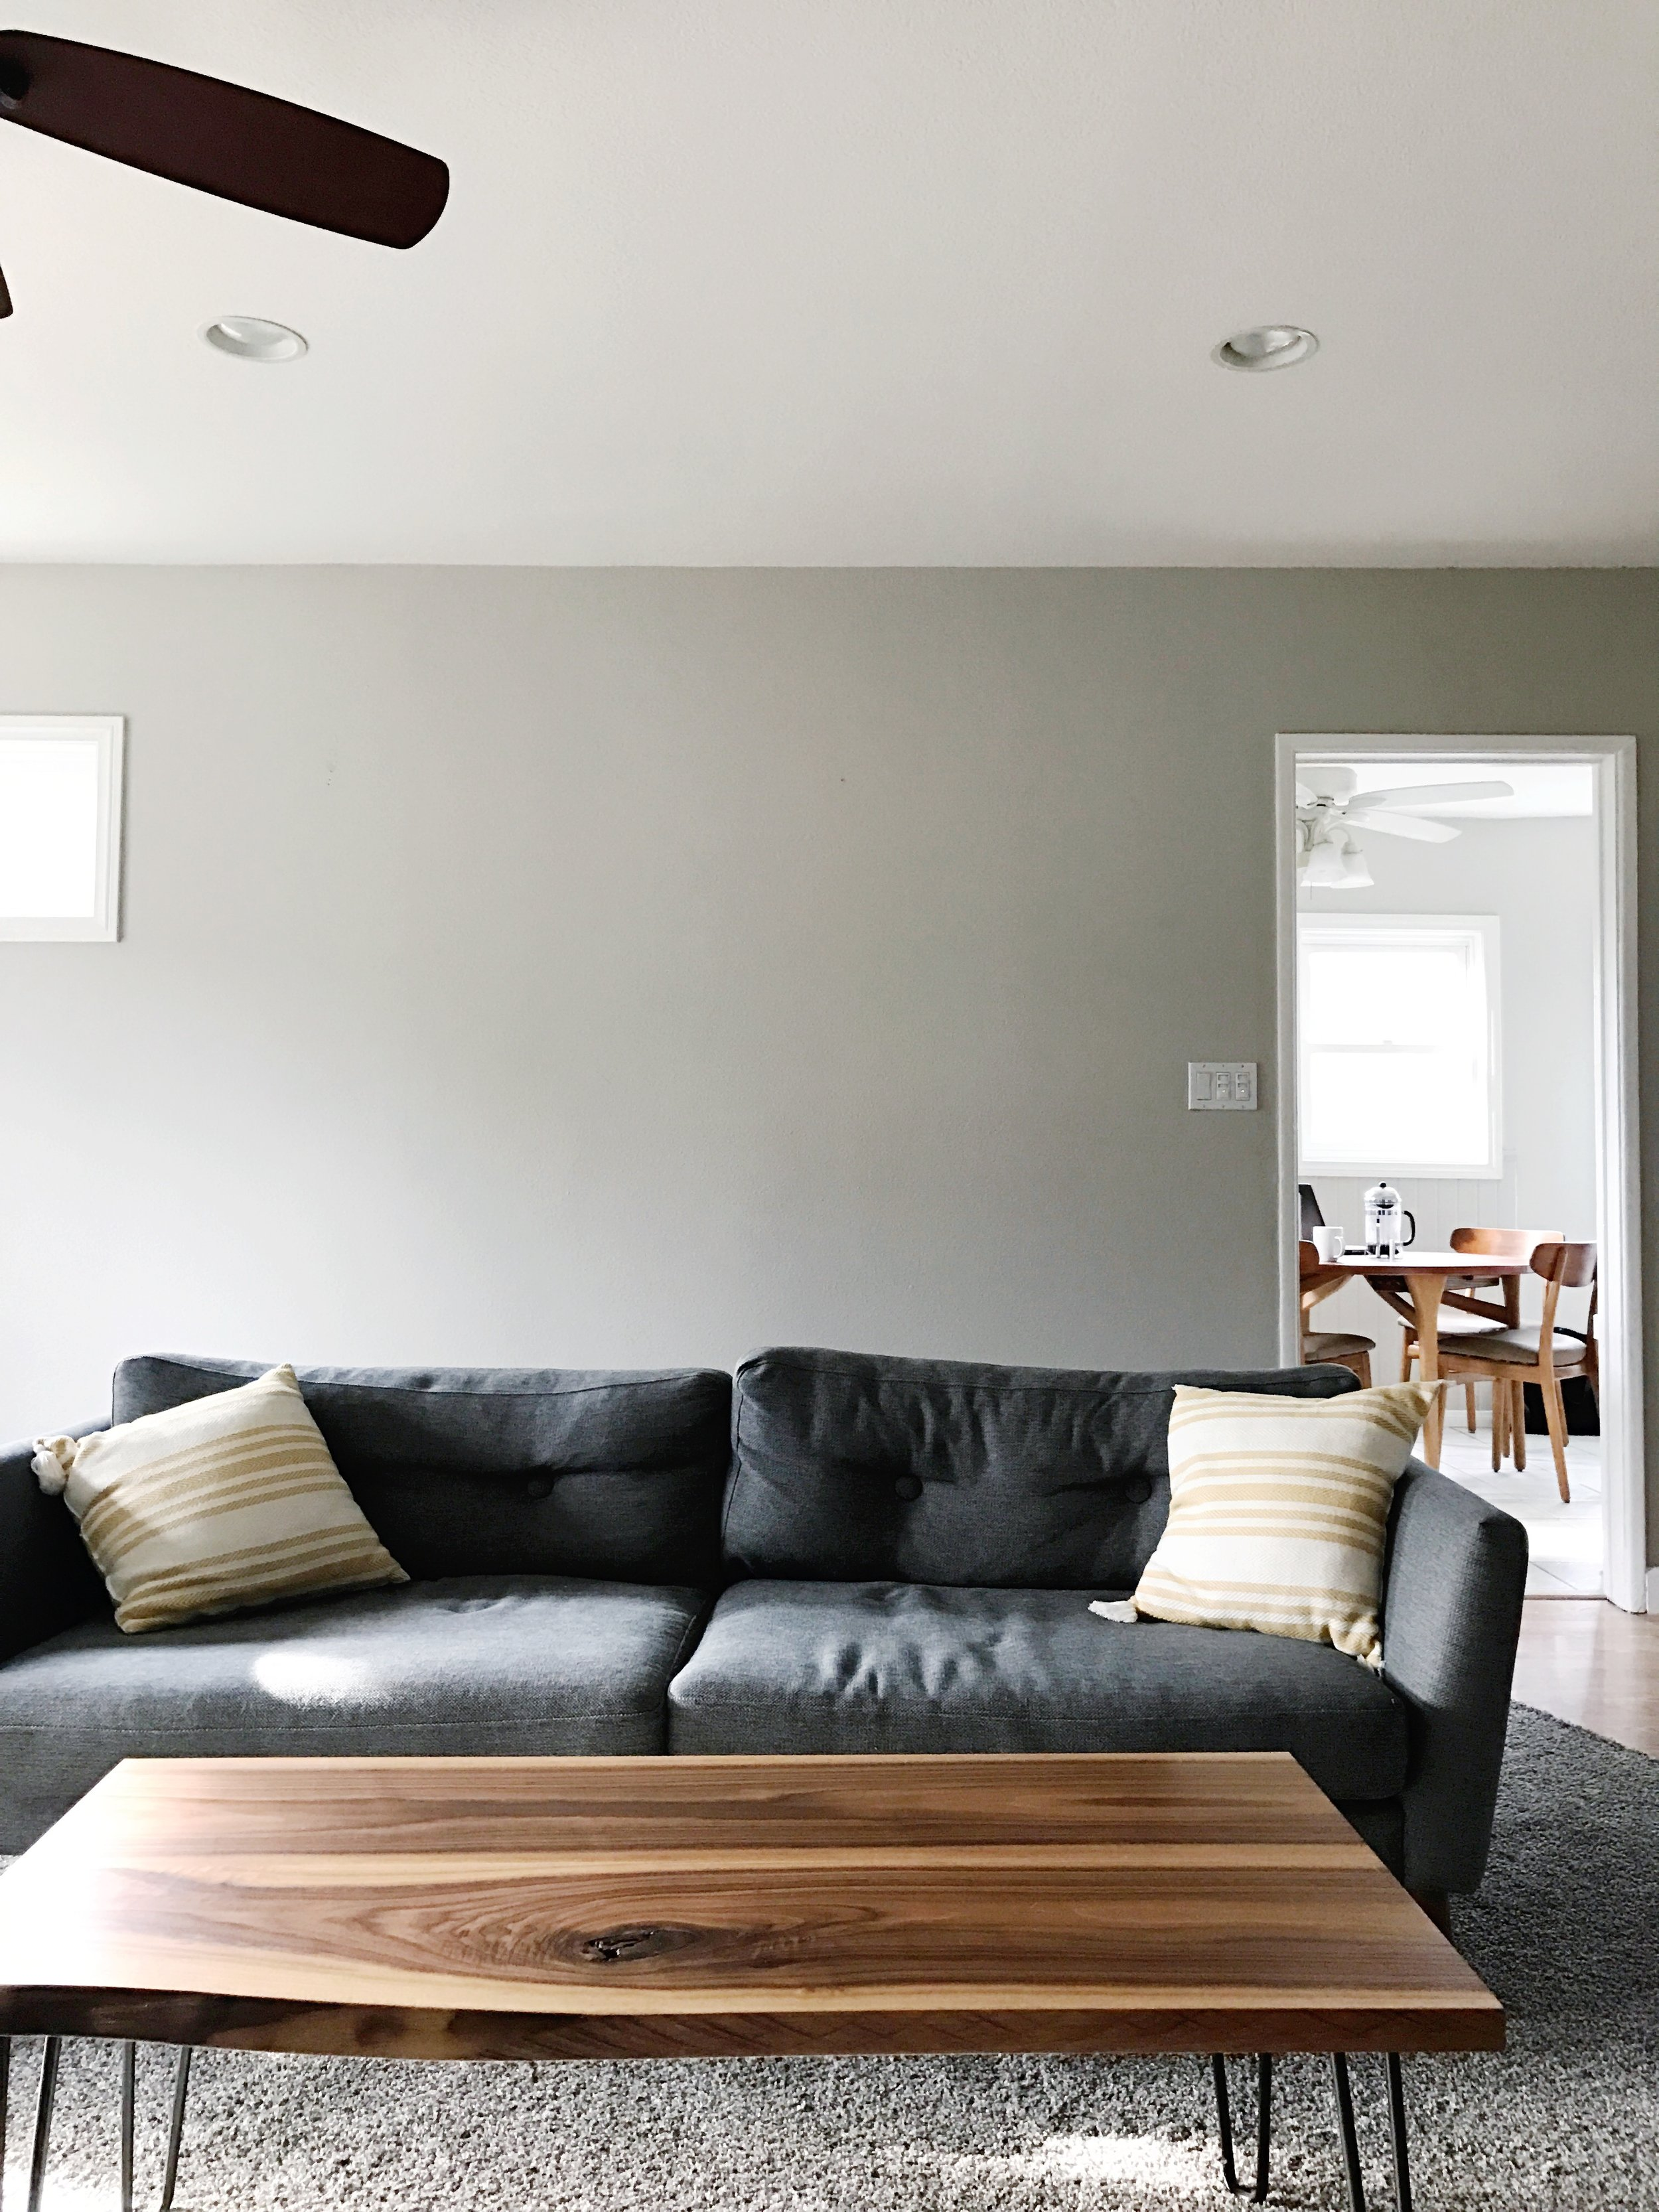 Couch + coffee table